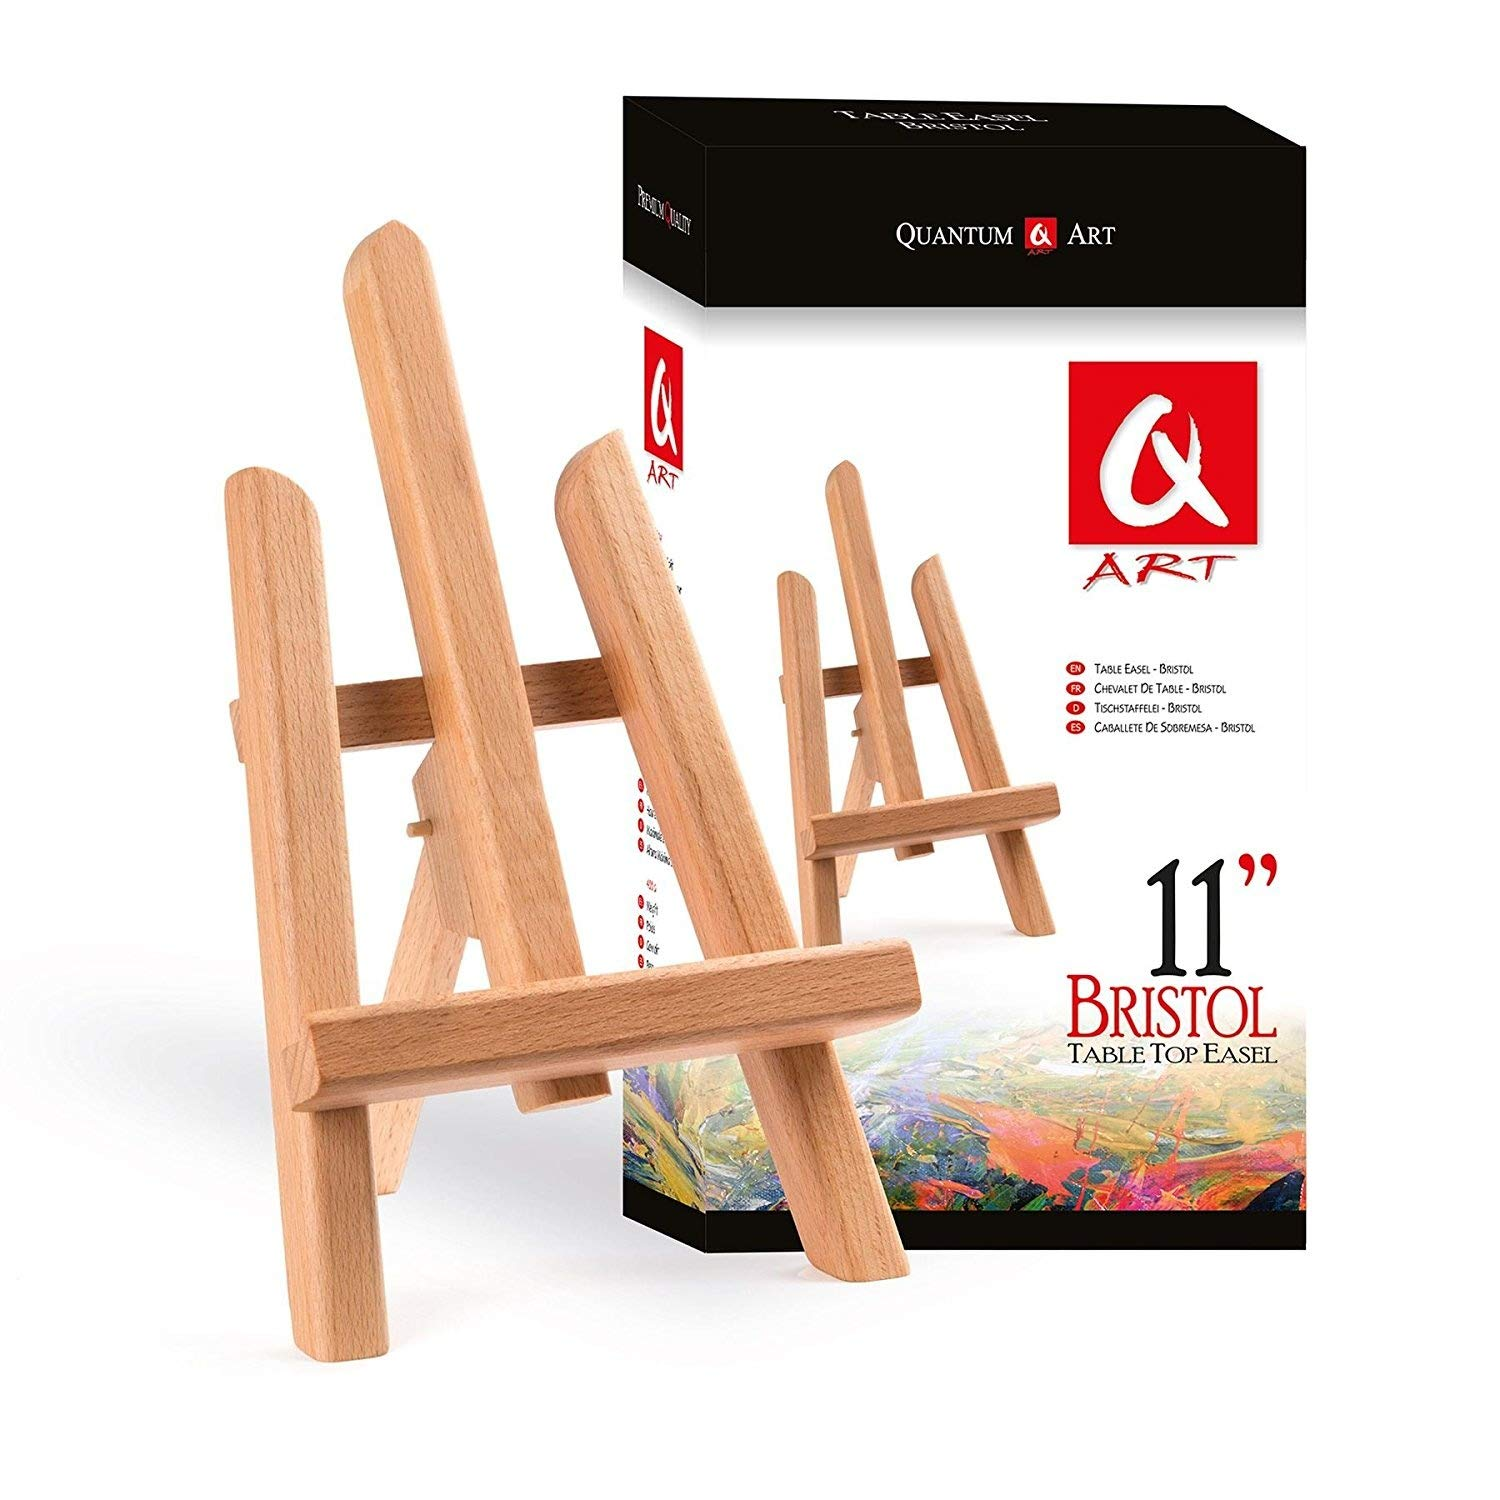 Table Top Easel 270mm BRISTOL - Beech Wood by Quantum Art QA-TE-BRISTOL-270BW